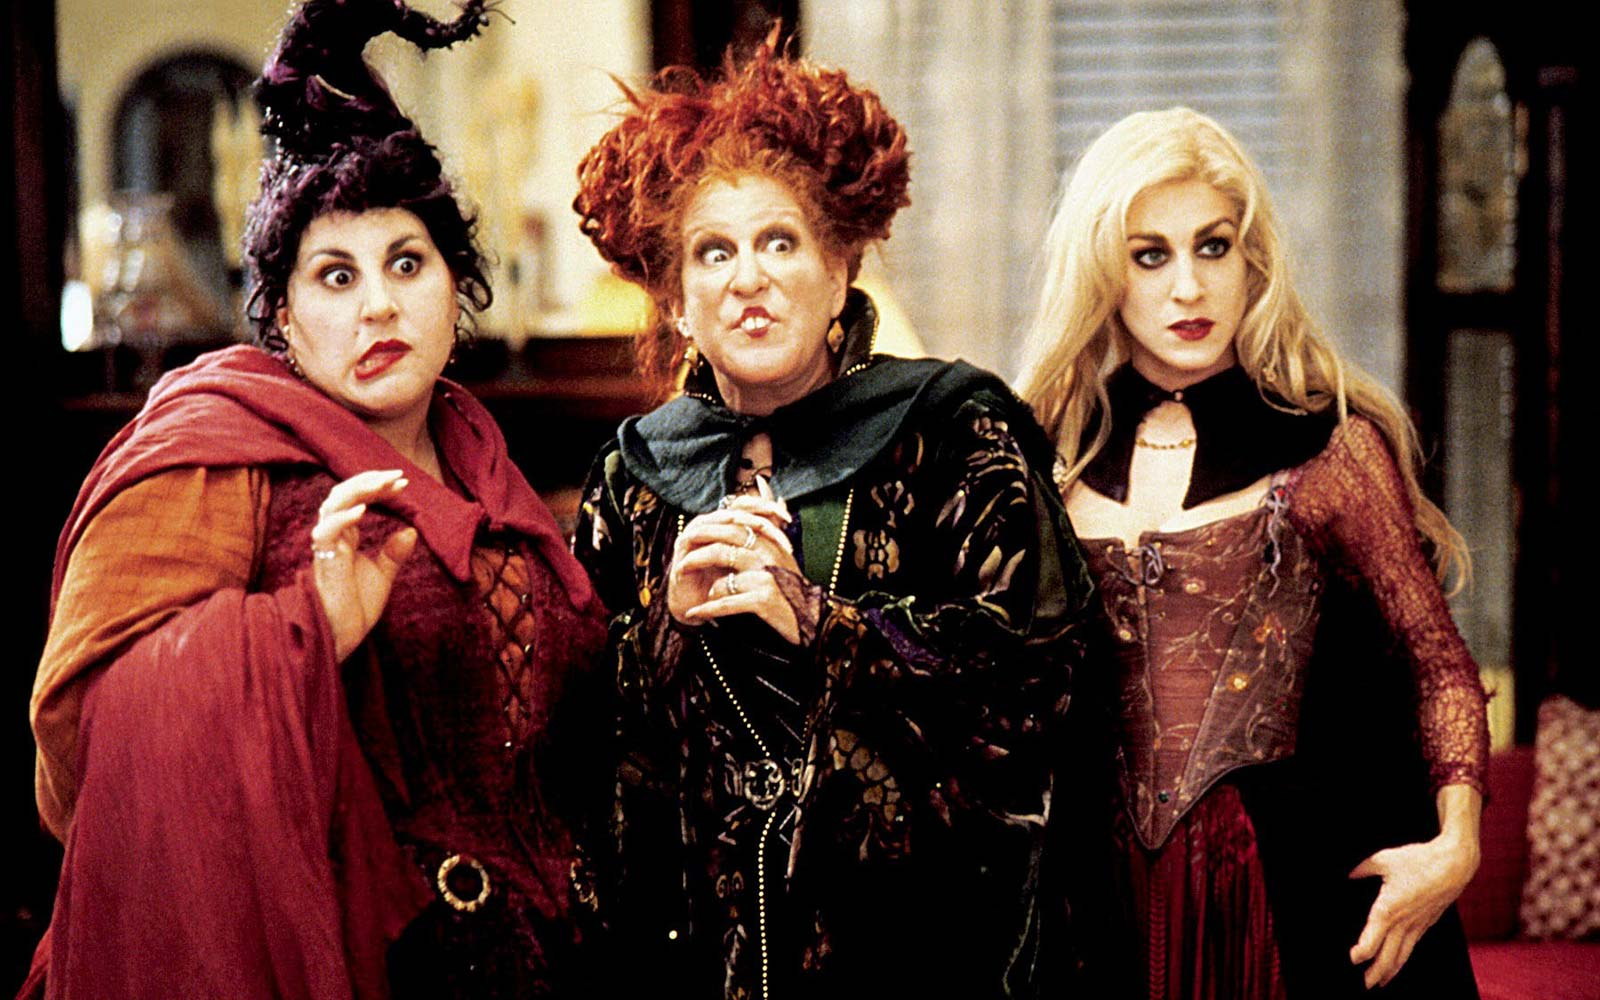 Here's How You Can Visit the Set of 'Hocus Pocus'